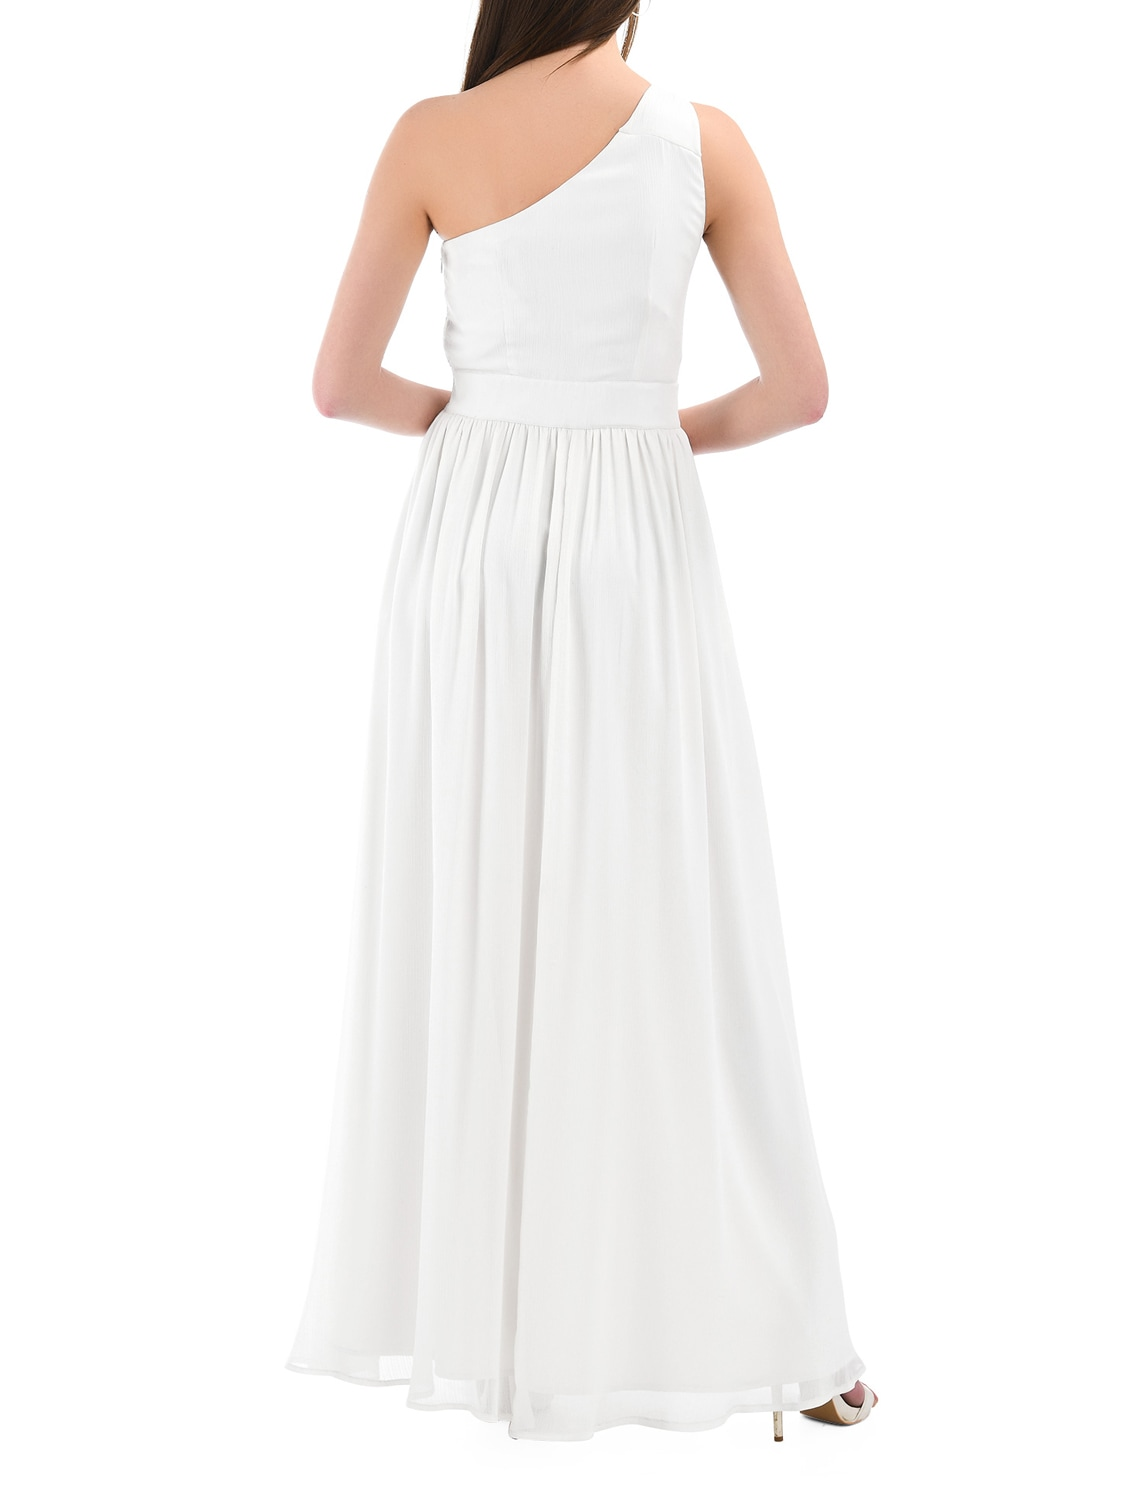 cdd0d641bd Buy White Solid Gown Dress by I Wear My Style - Online shopping for Dresses  in India